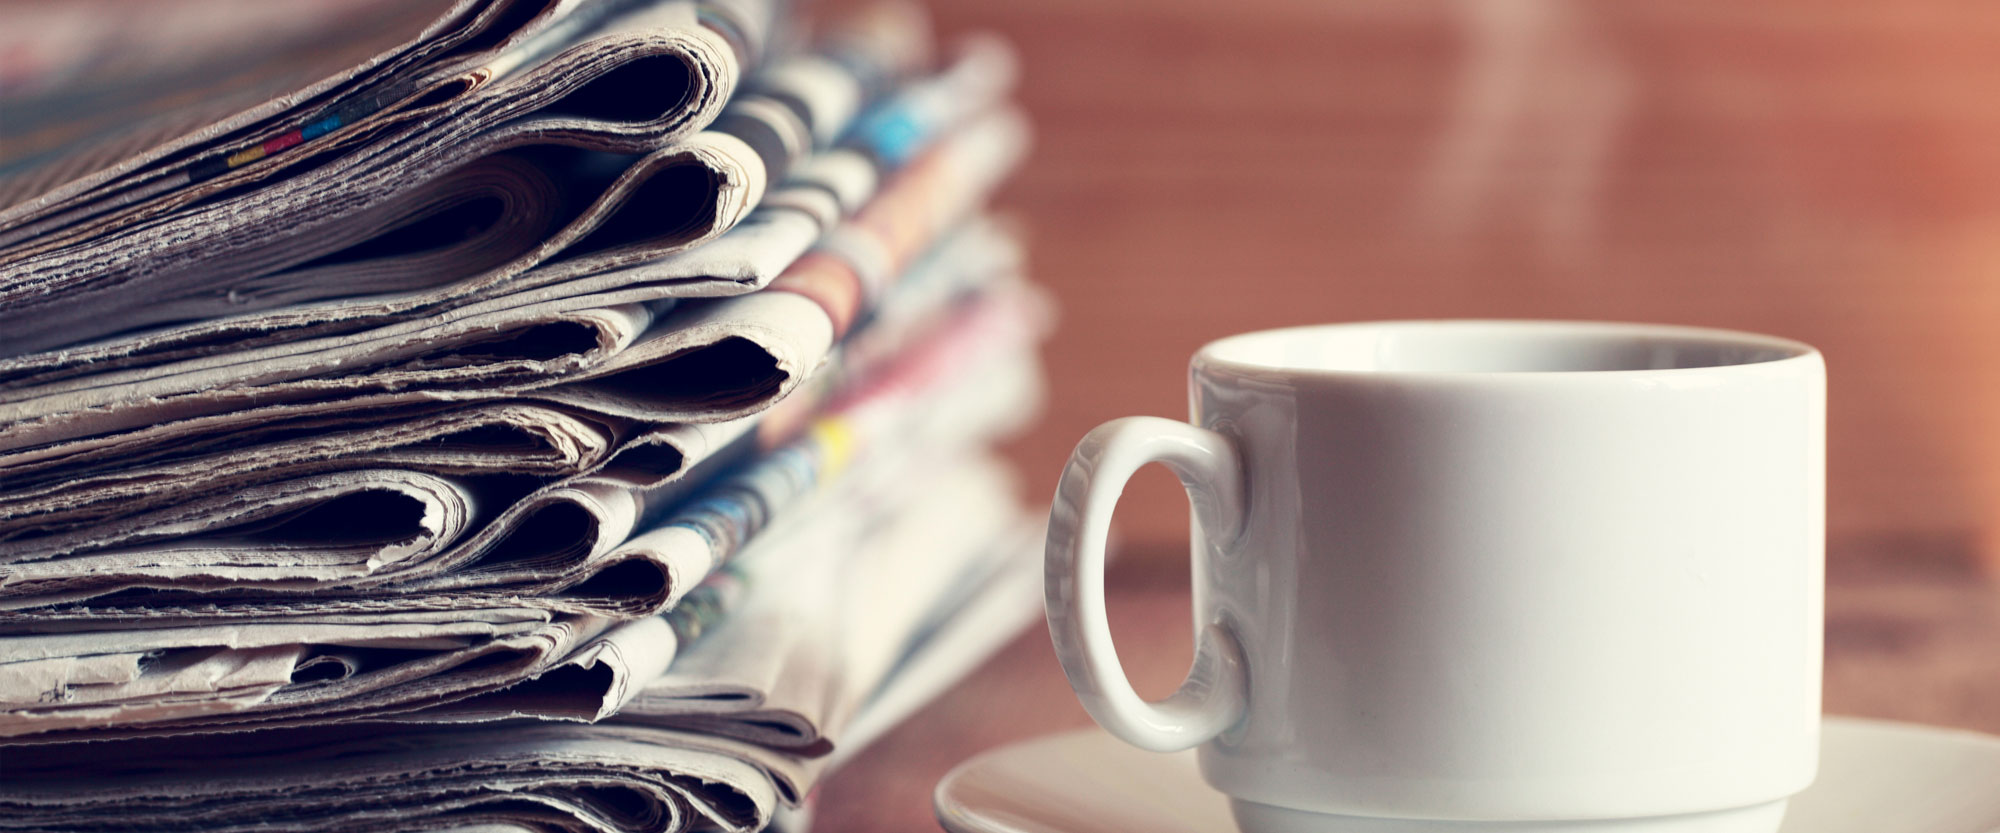 news papers and coffee